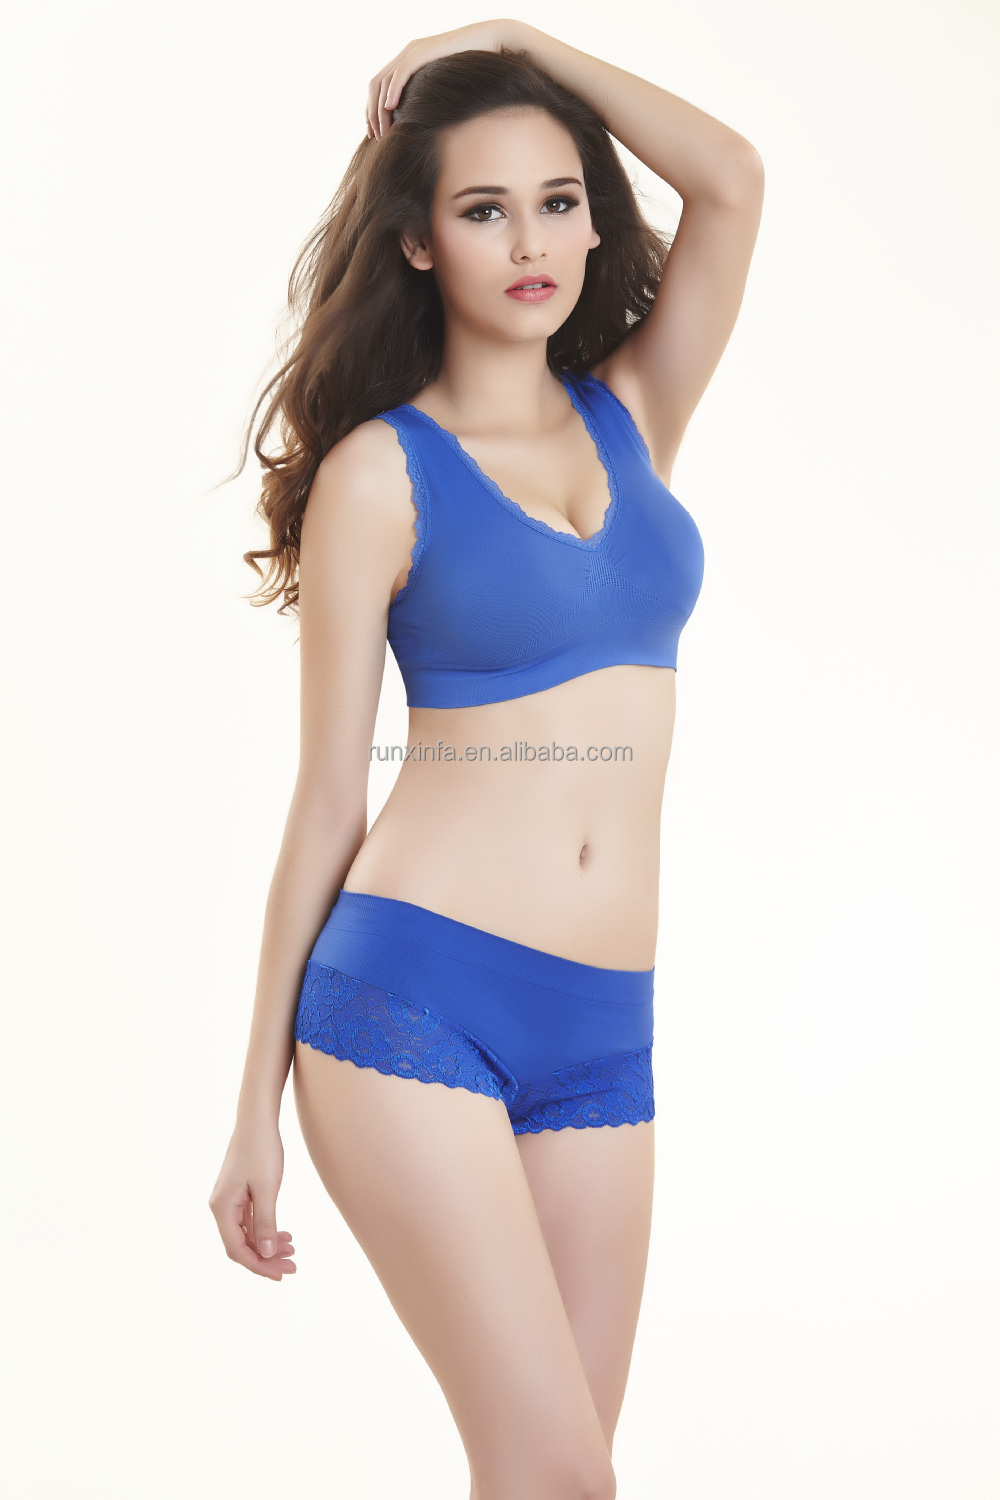 Women lingerie Sexy-bra-panty-new design from shantou China factory